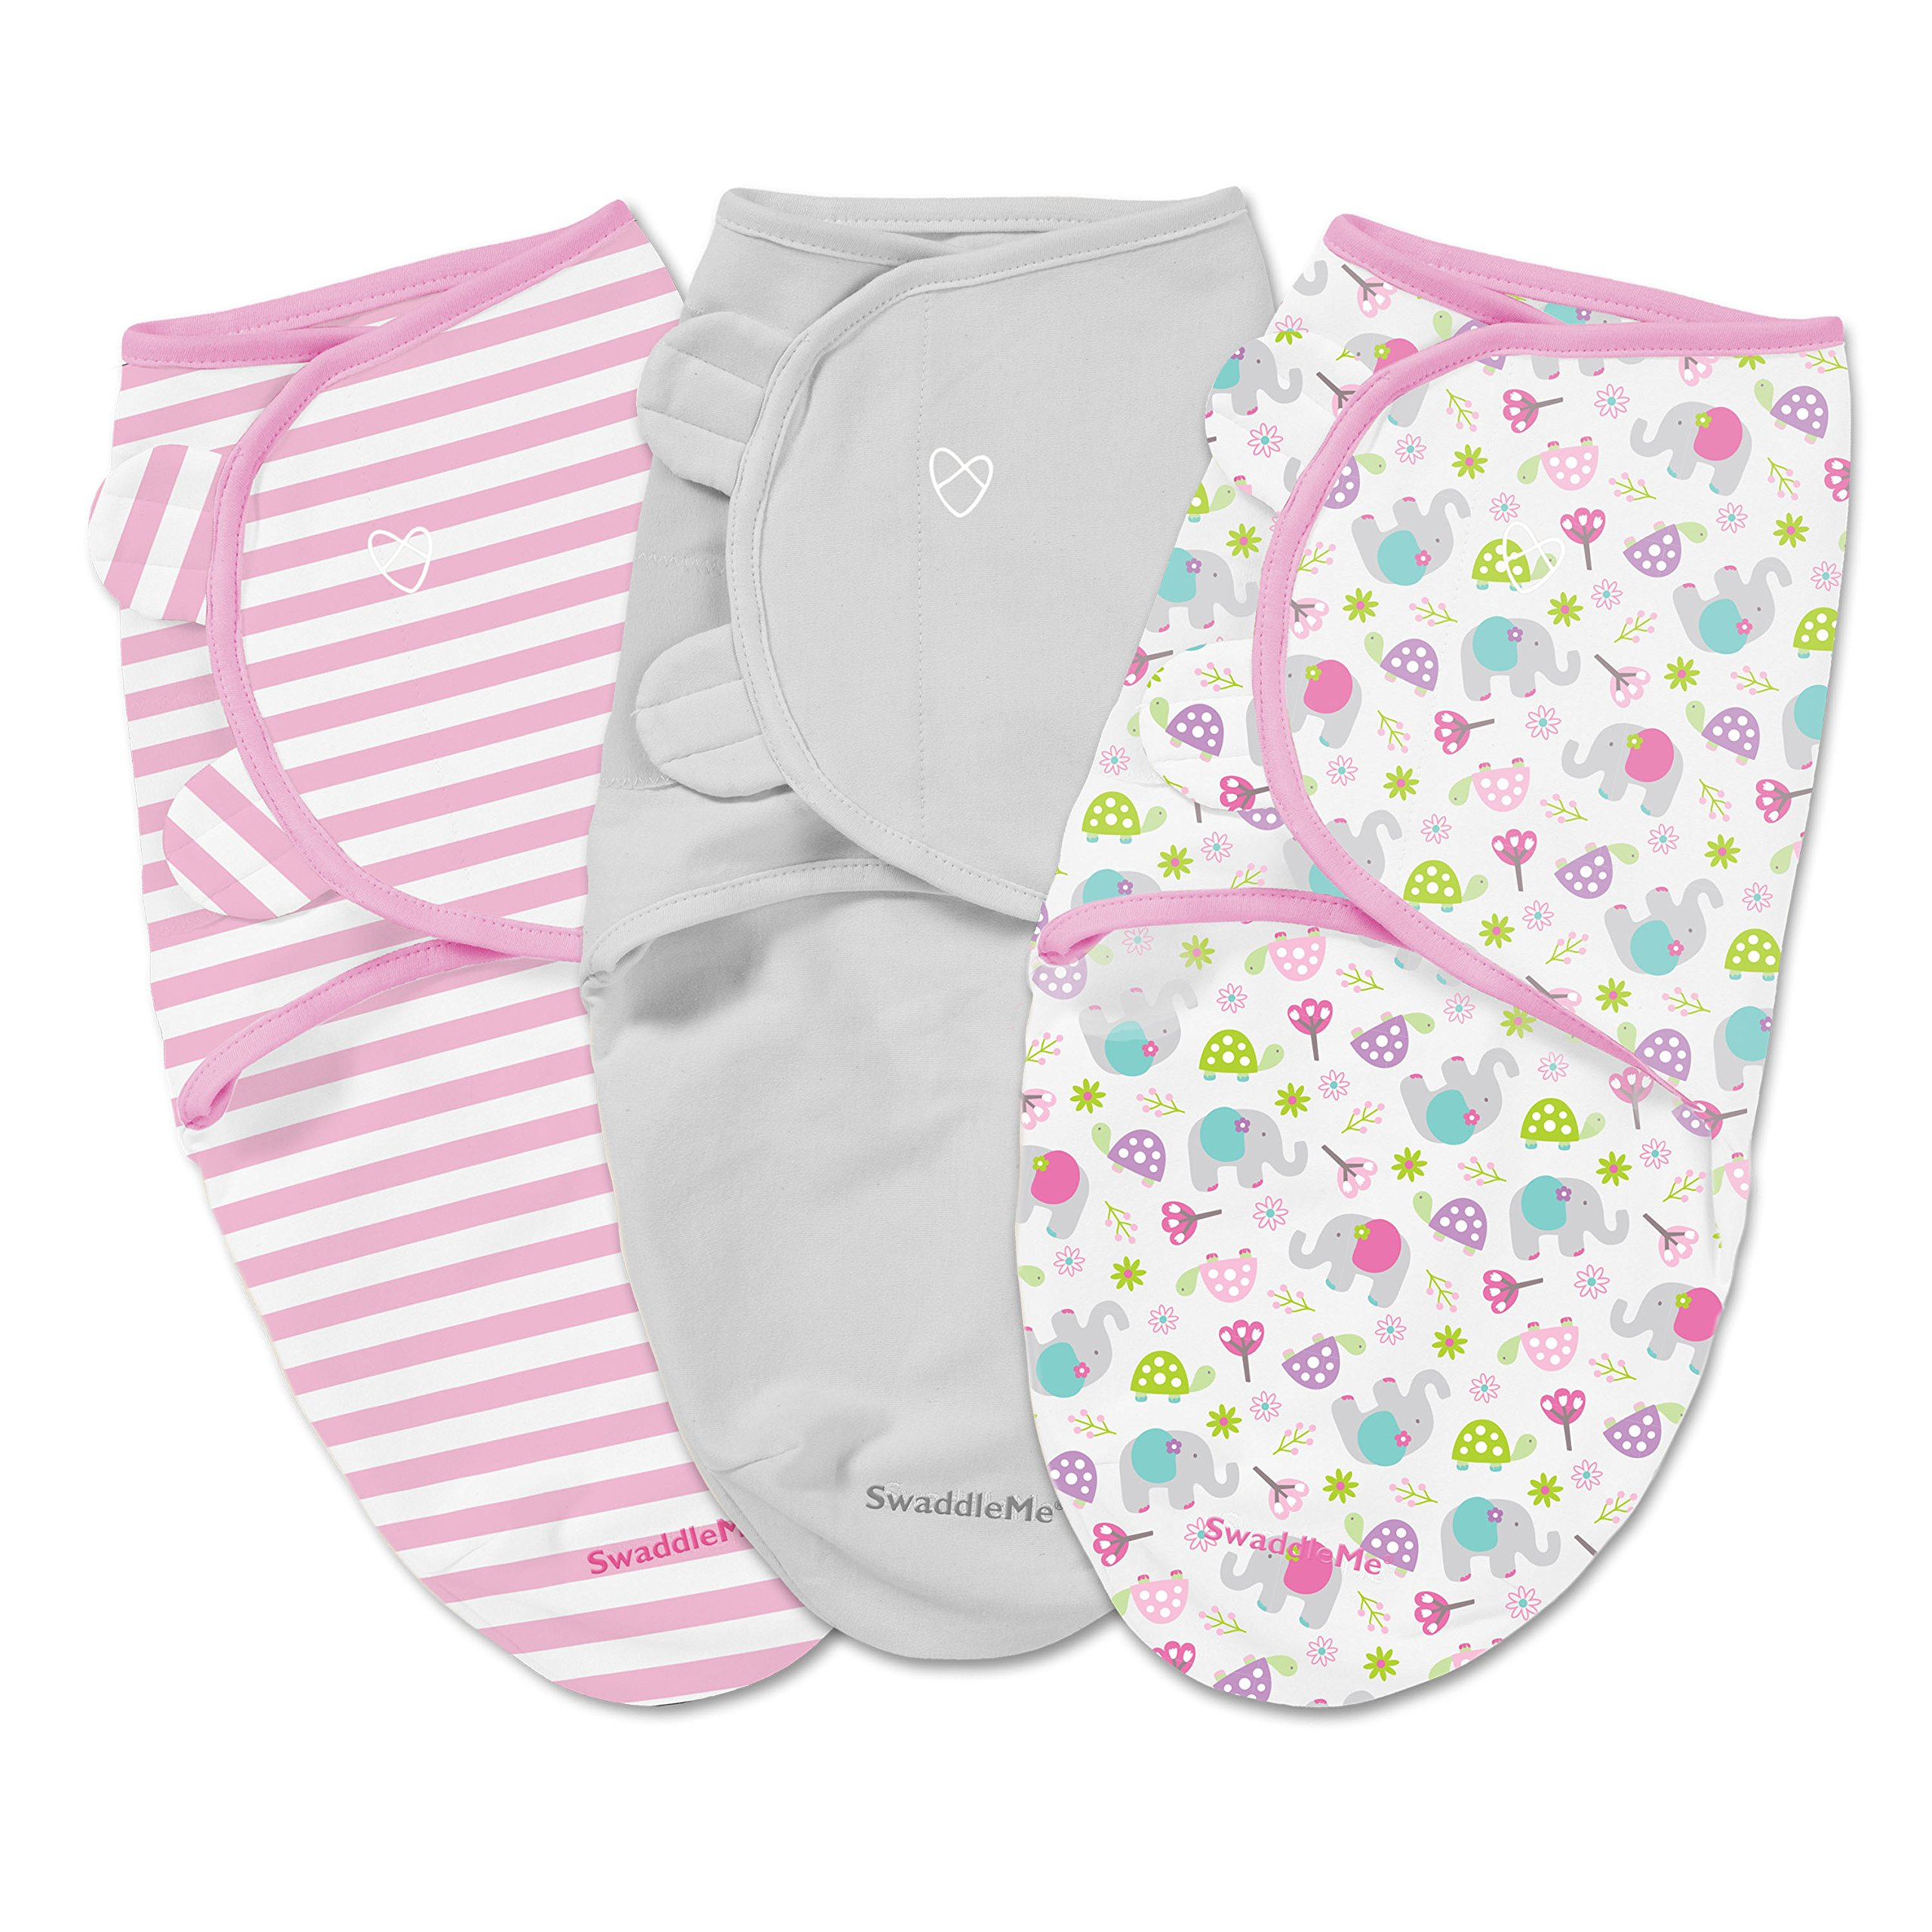 SwaddleMe Original Swaddle 3-PK, Ellie Flower (SM)